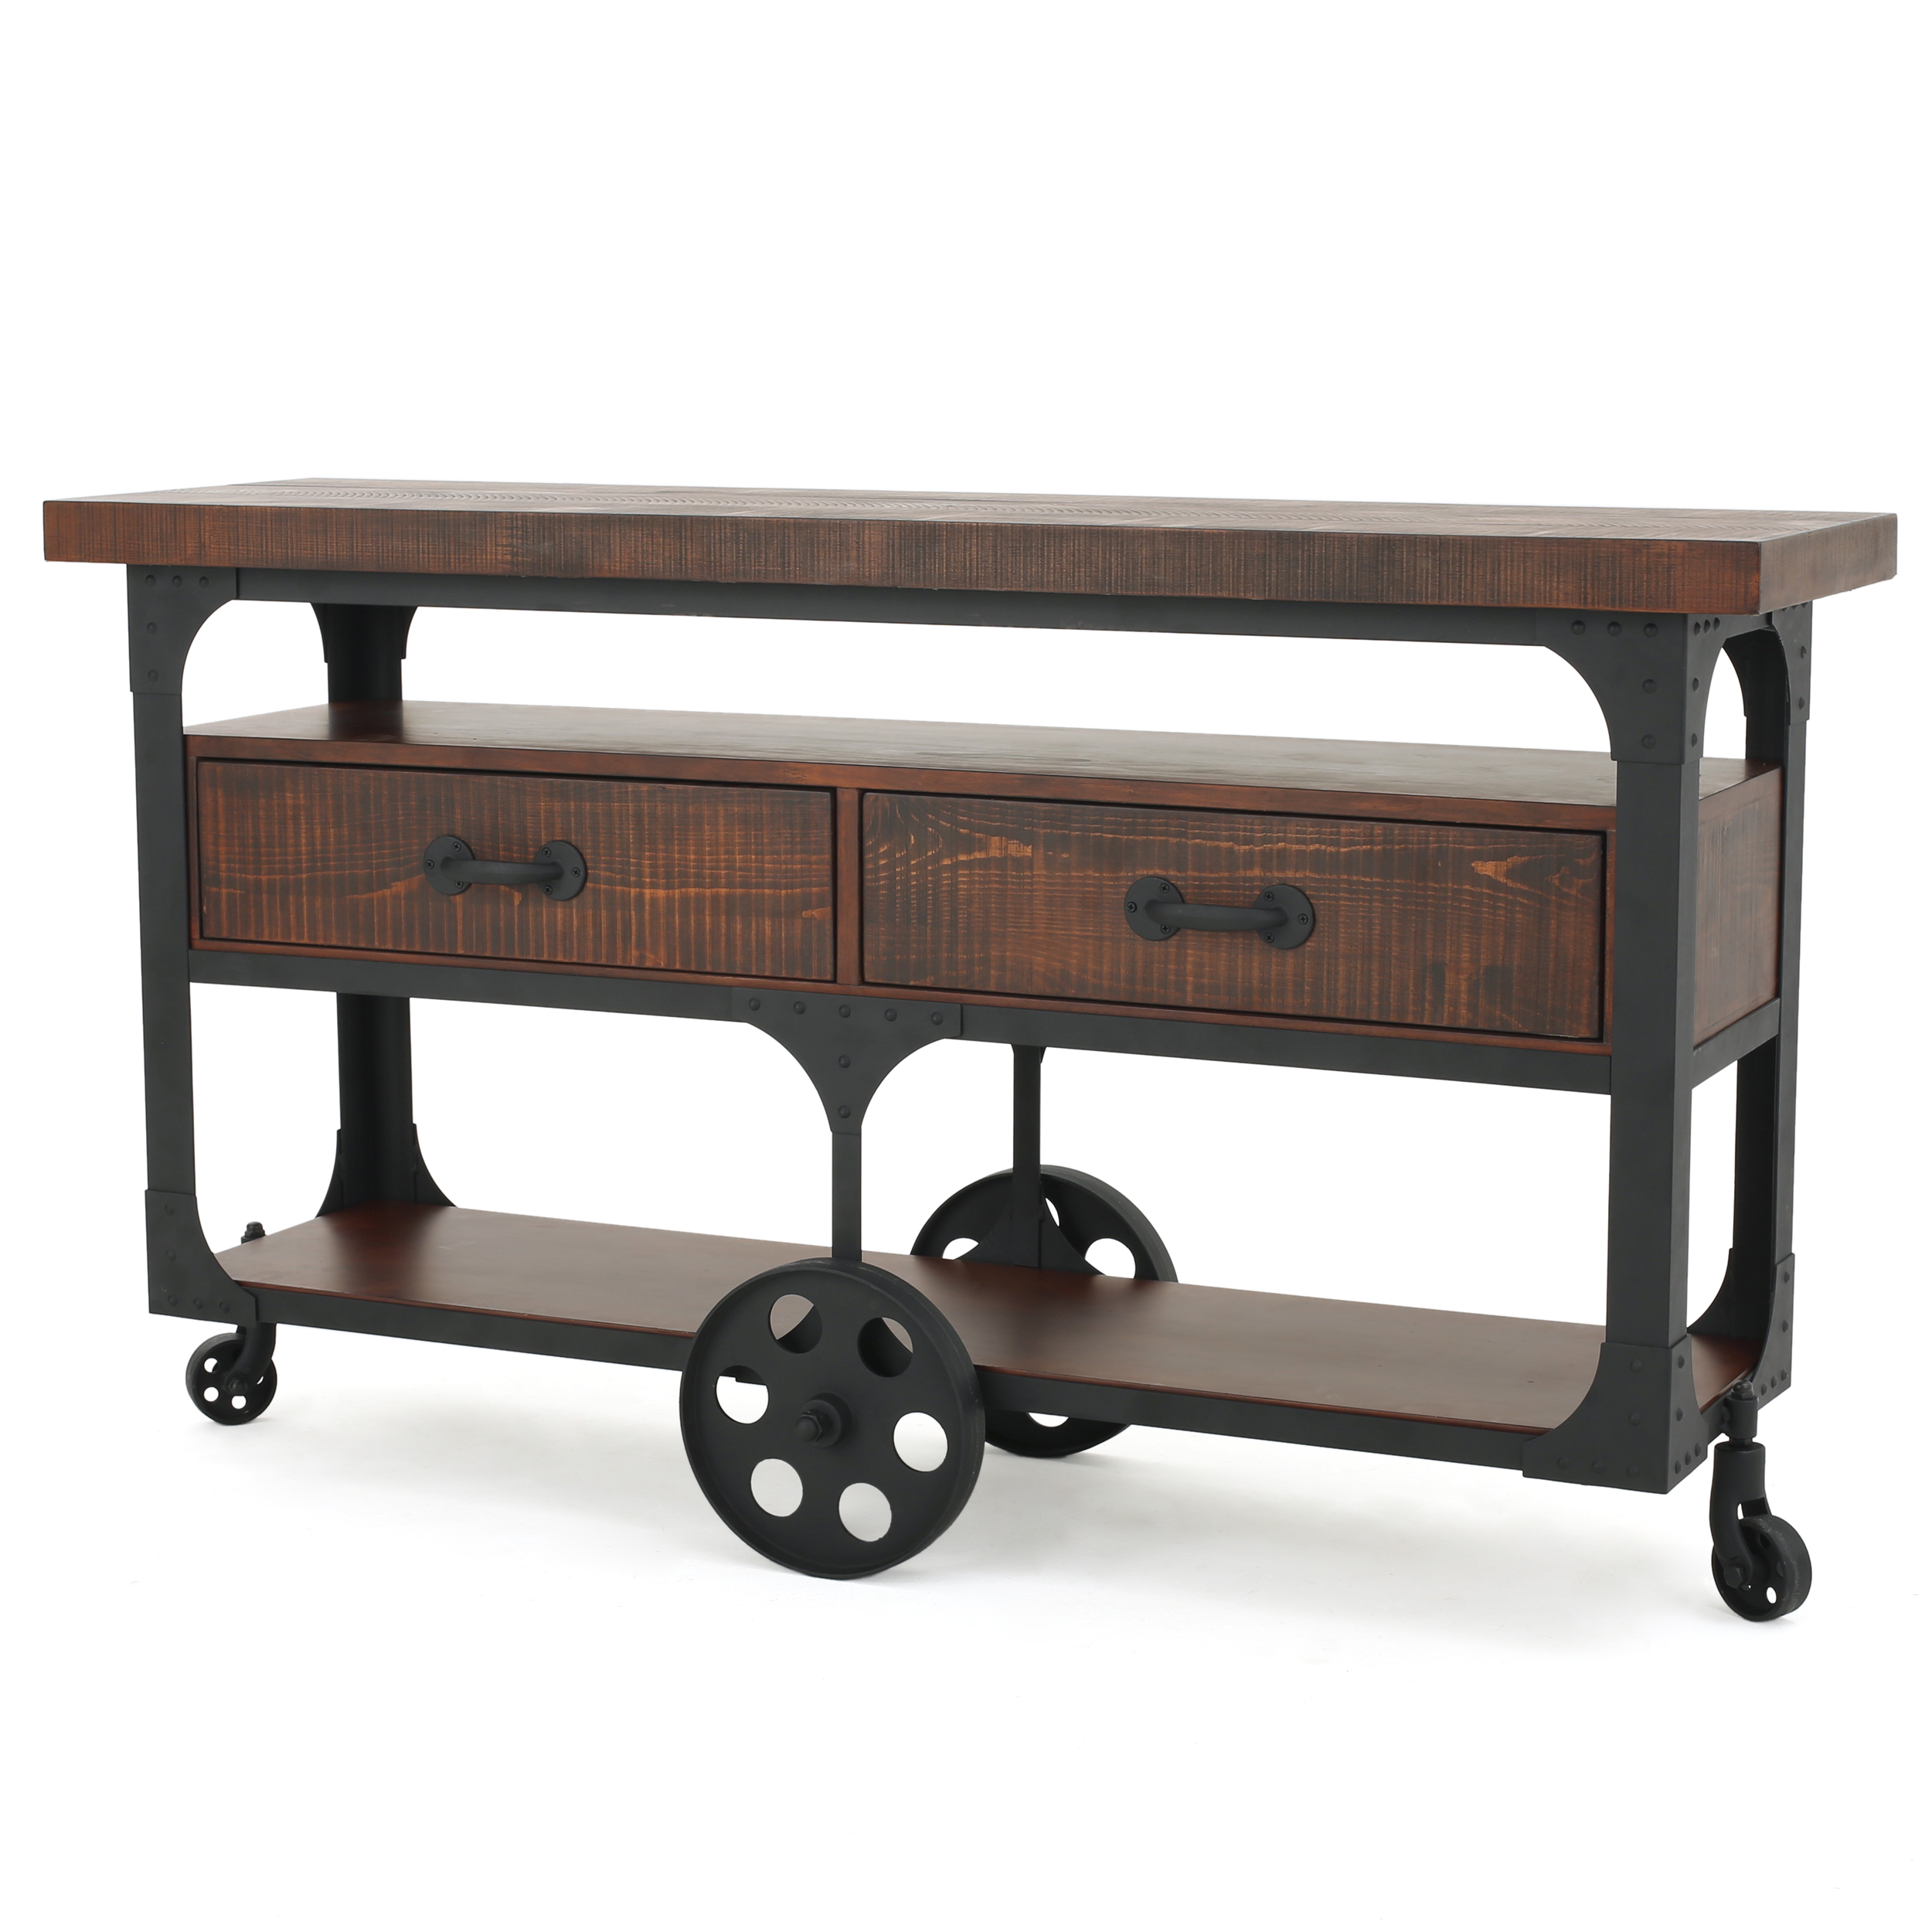 Anglia Wood TV Console with Drawers, Dark Brown